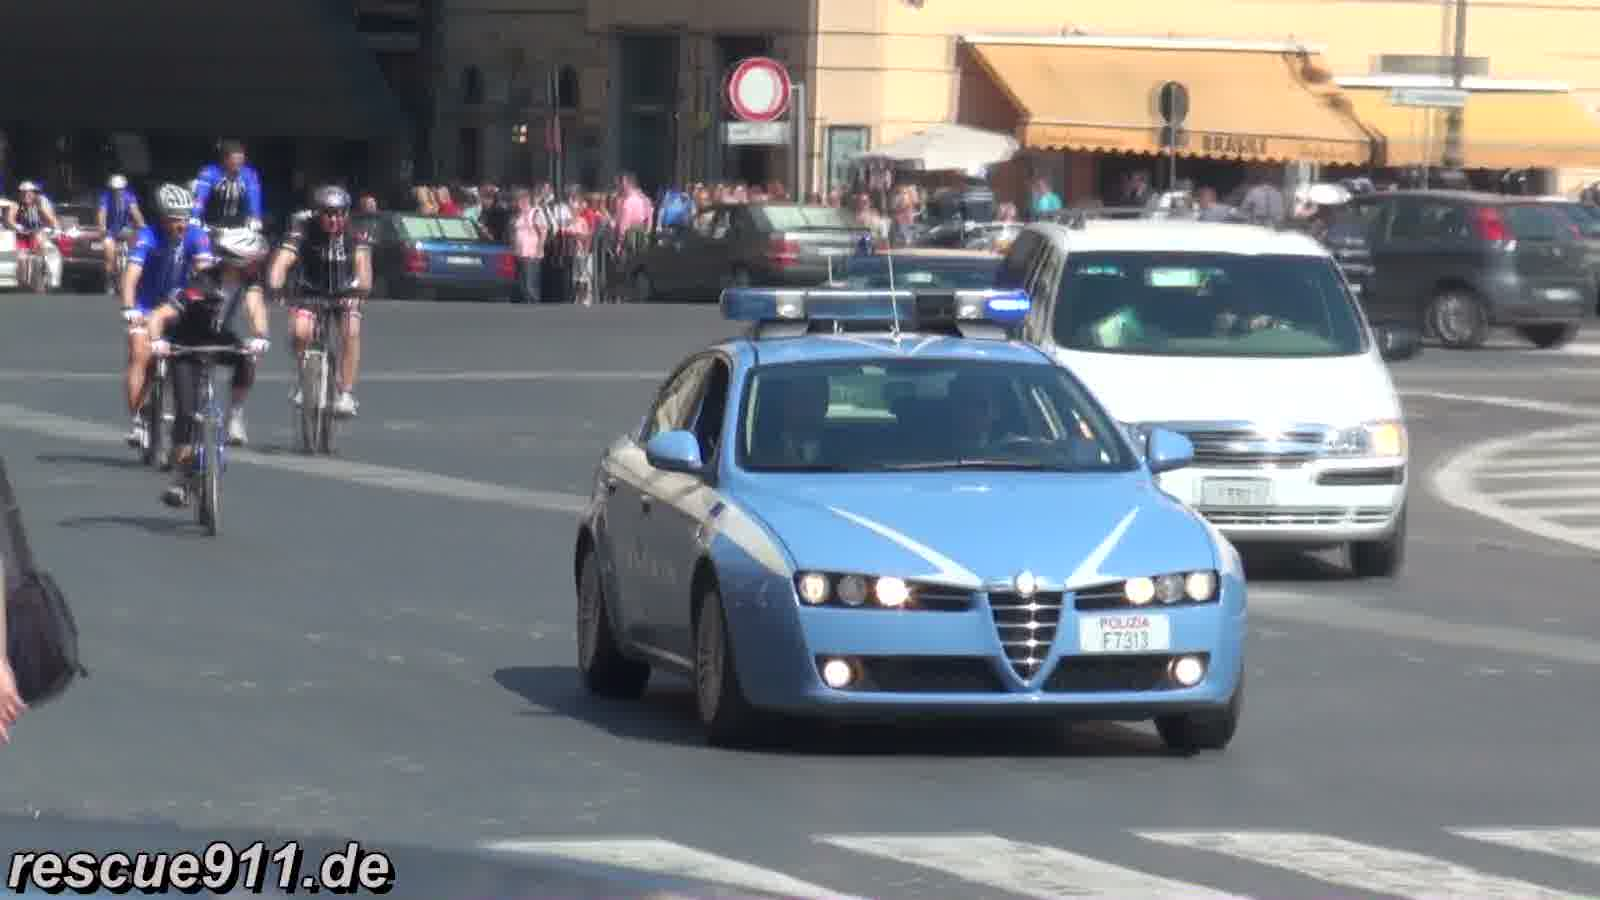 VIP escorts Rome (collection)